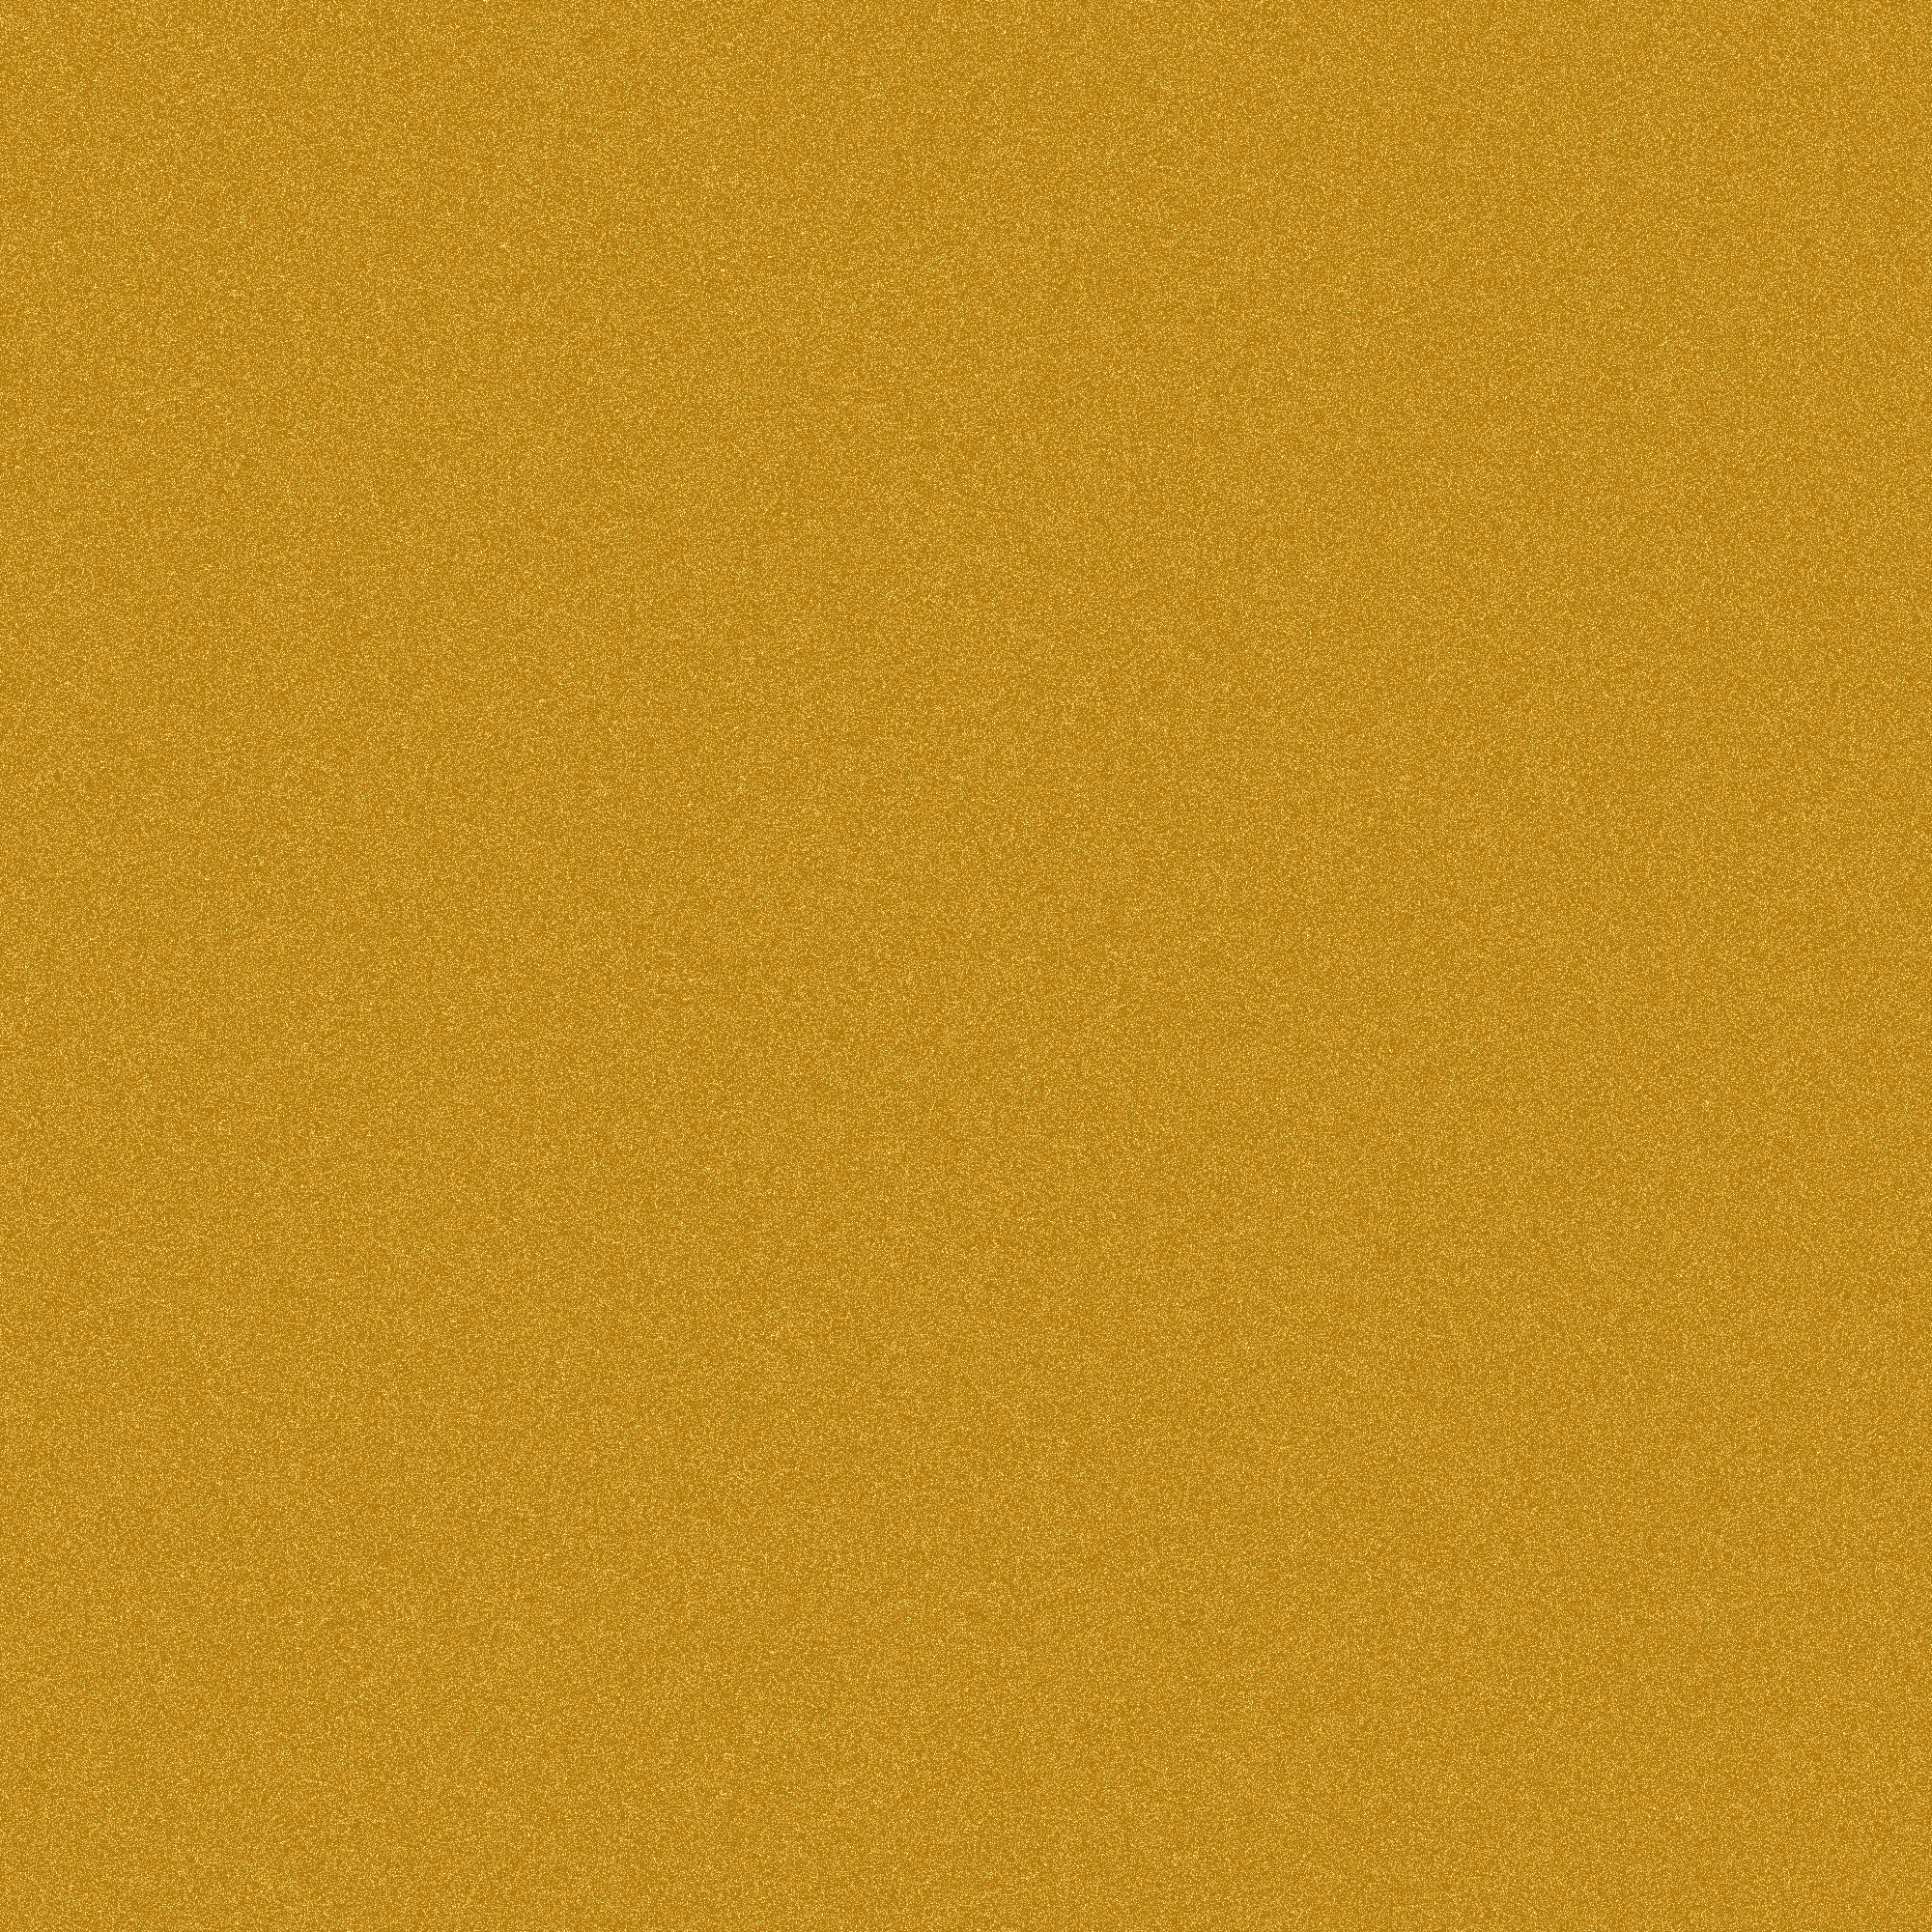 Quot Gold Quot Noise Background Texture Png Public Domain Icon